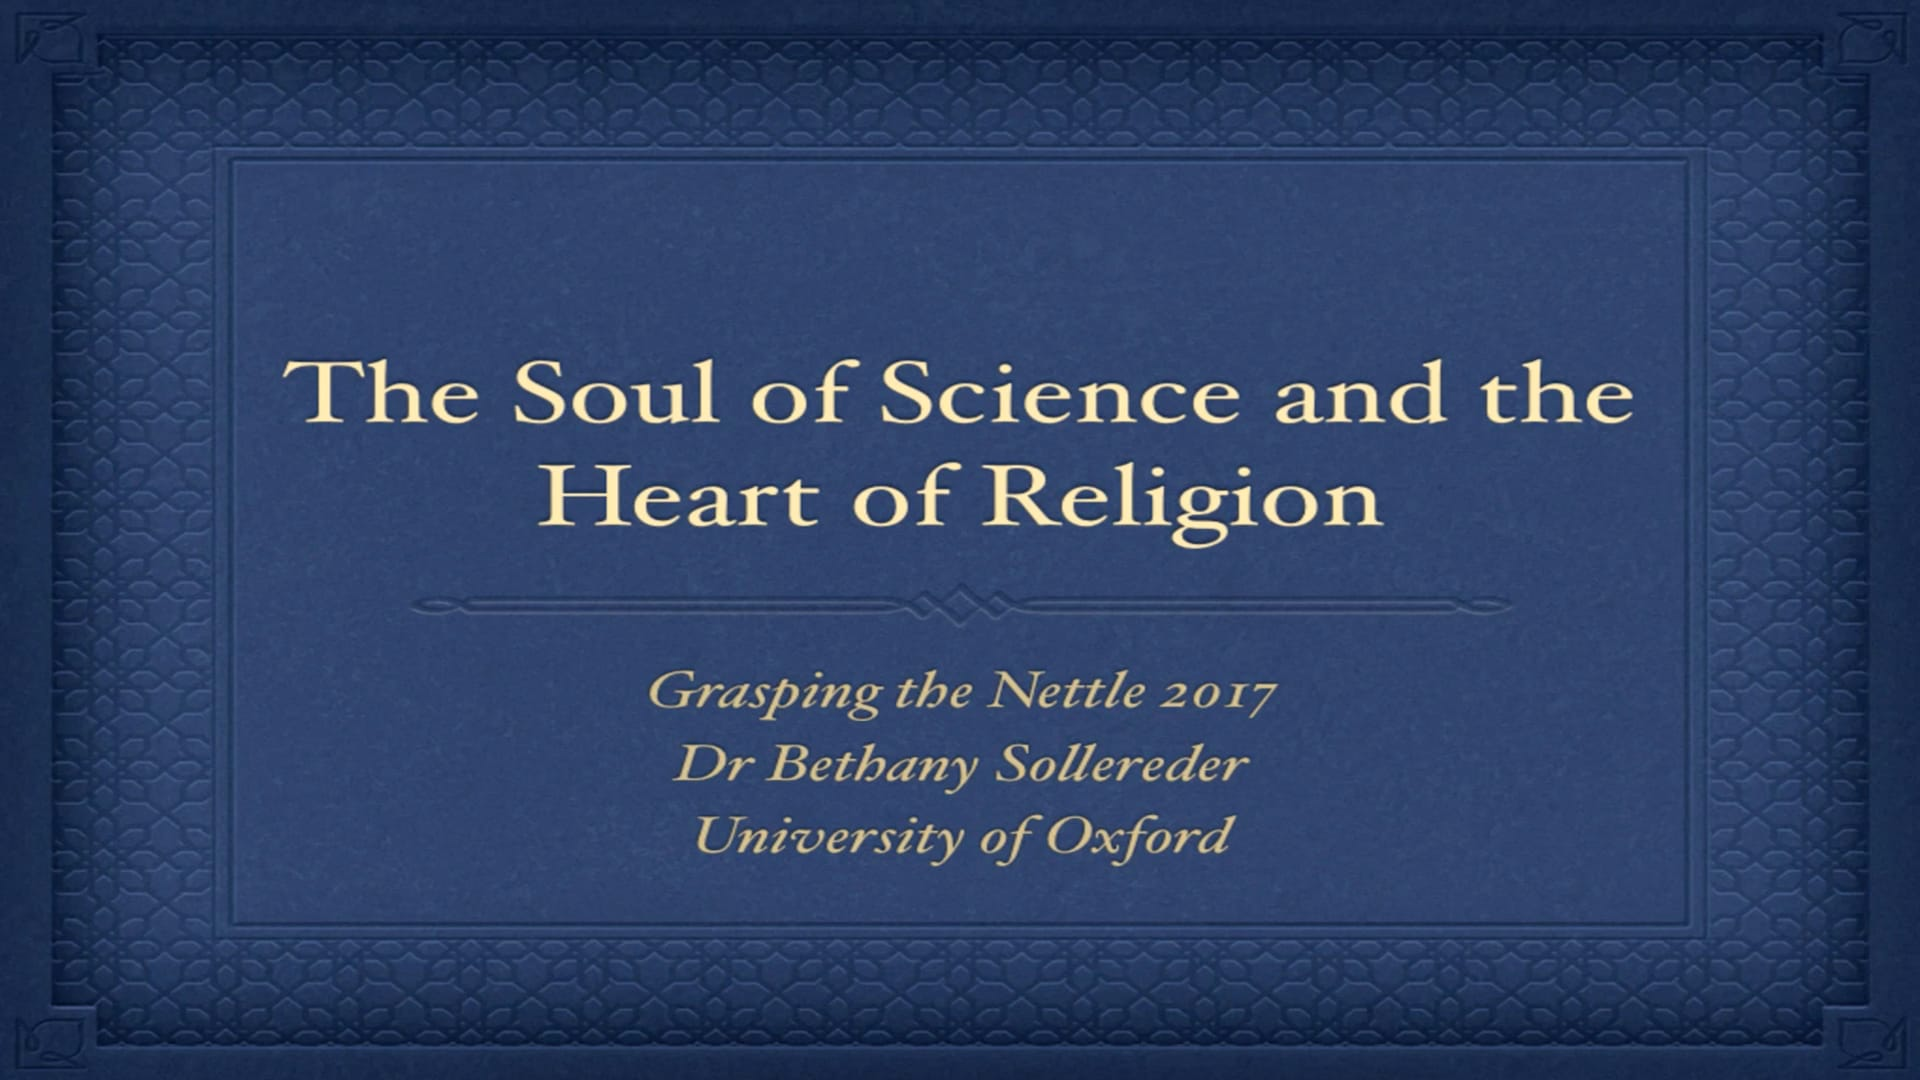 The Soul of Science and the Heart of Religion